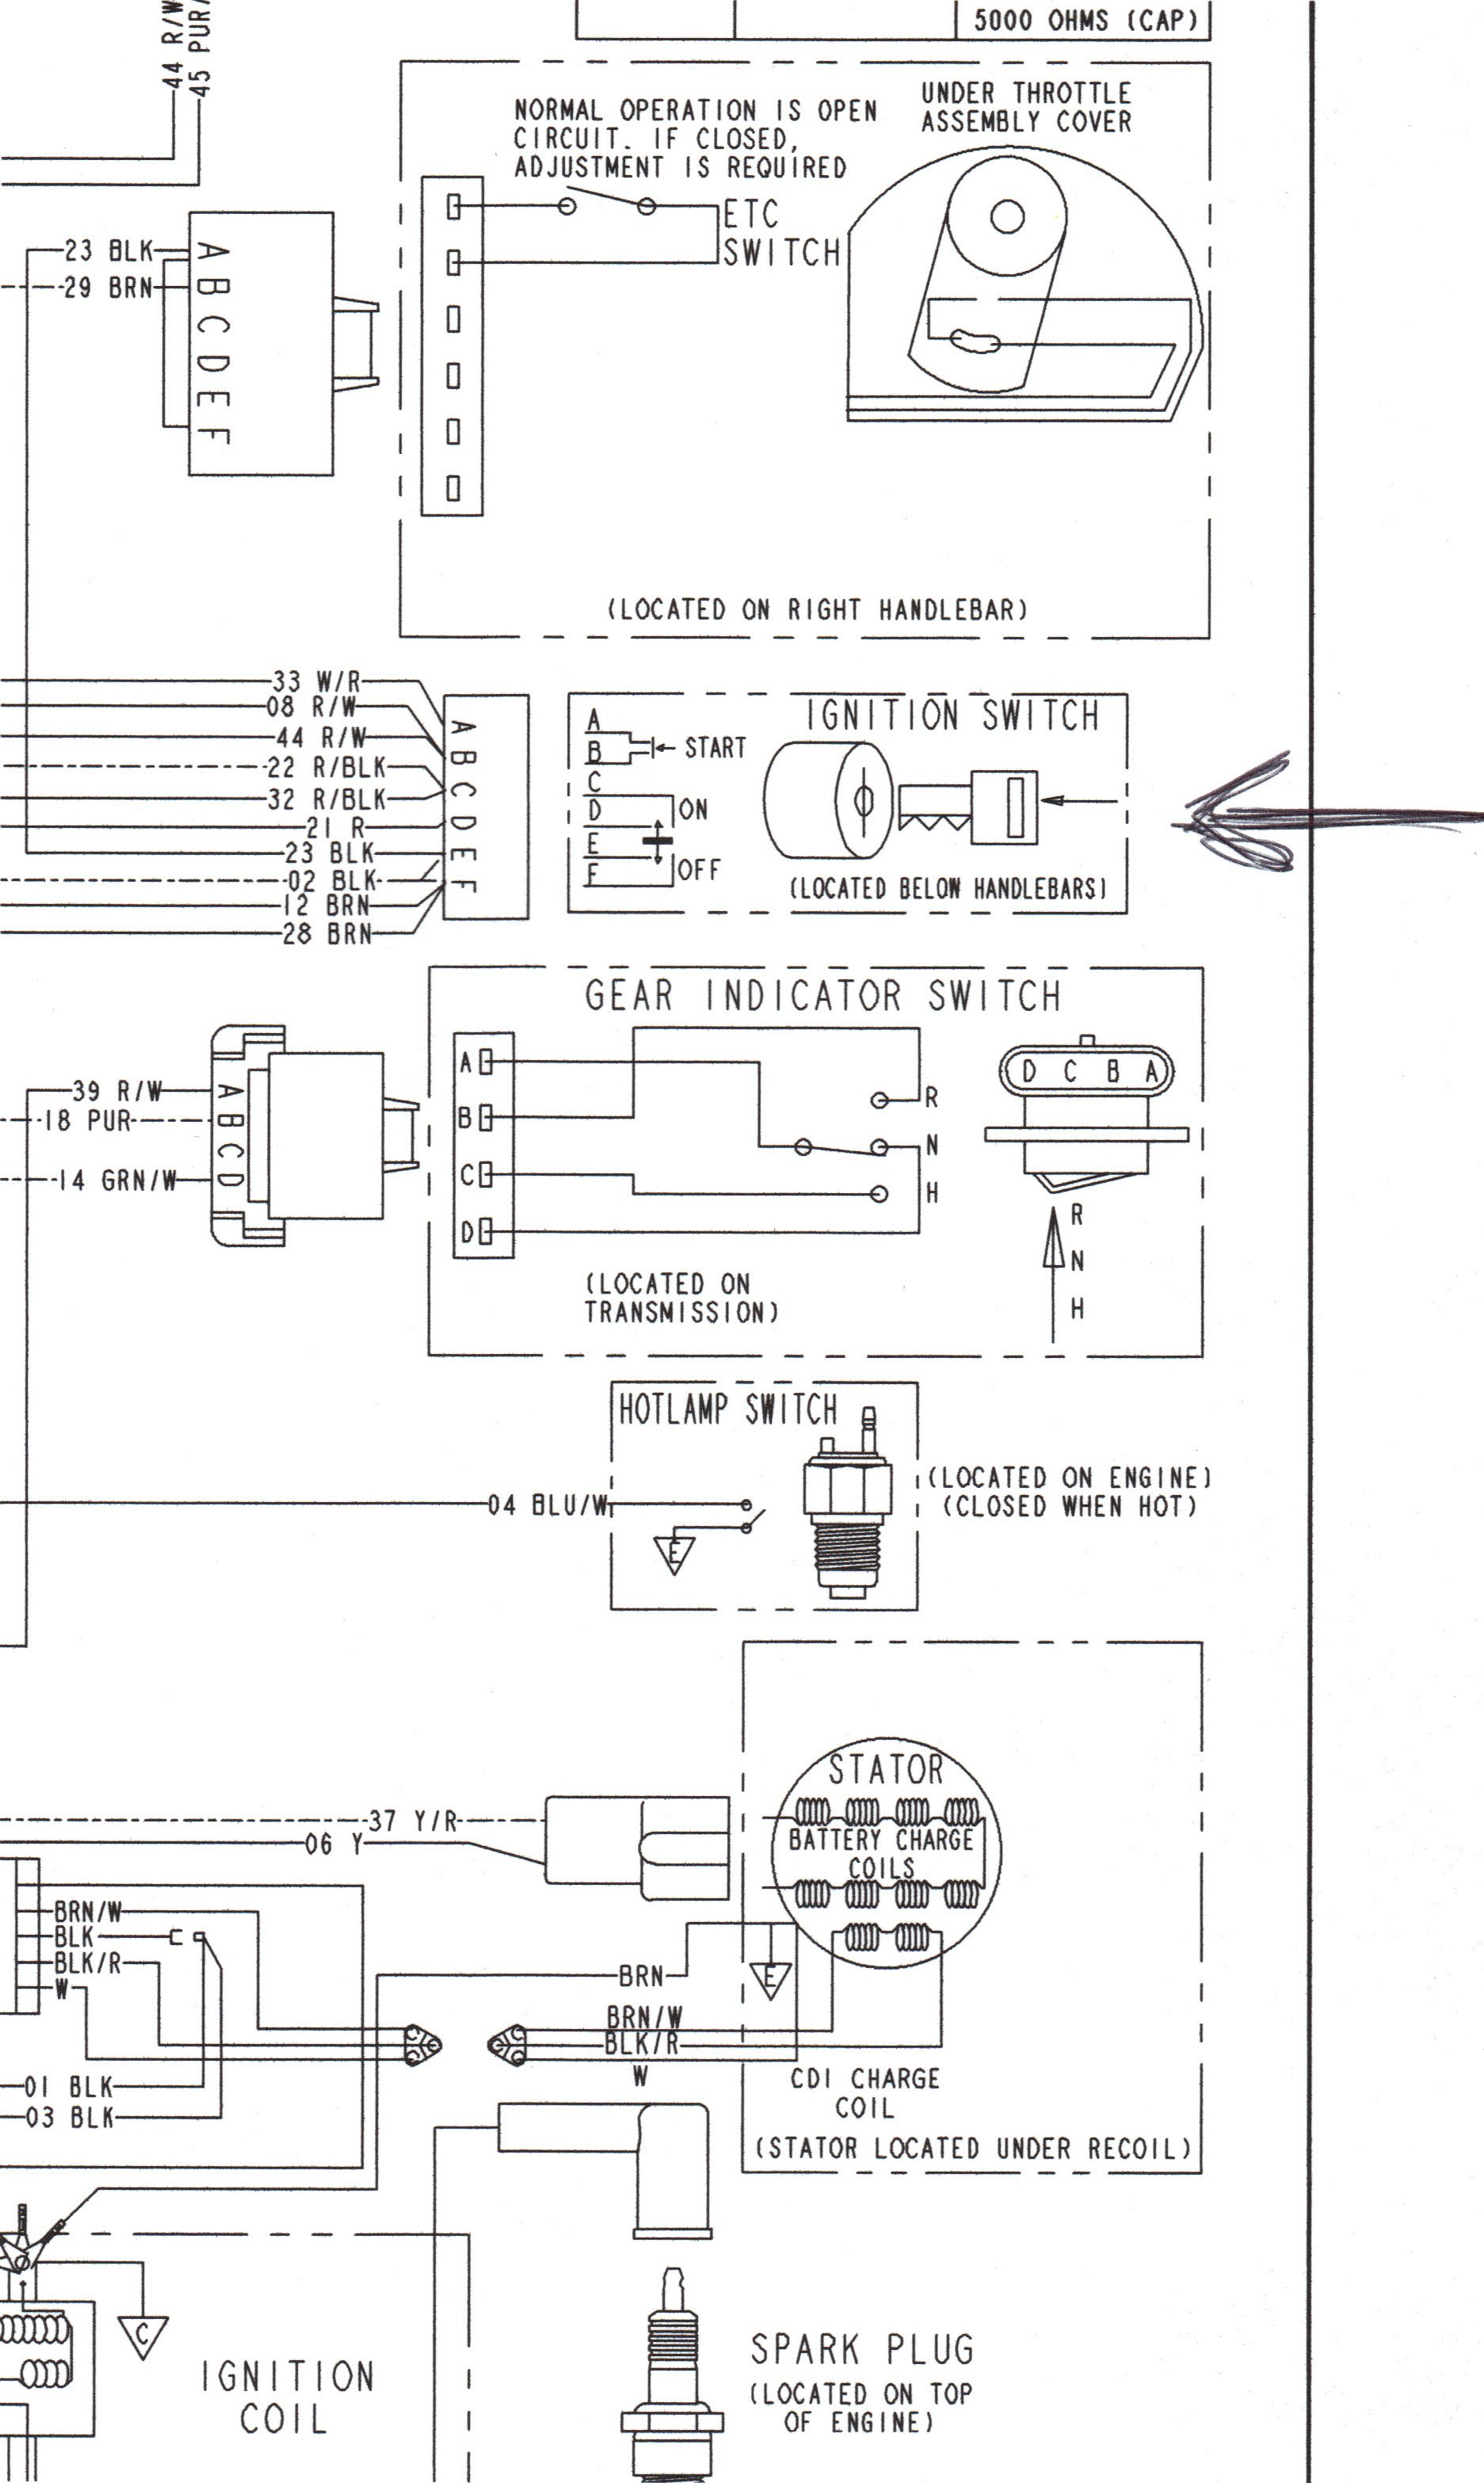 Free Polaris Wiring Diagram Great Design Of 2002 600 Classic Trail Boss 250 1991 Get Sportsman 700 Ignition